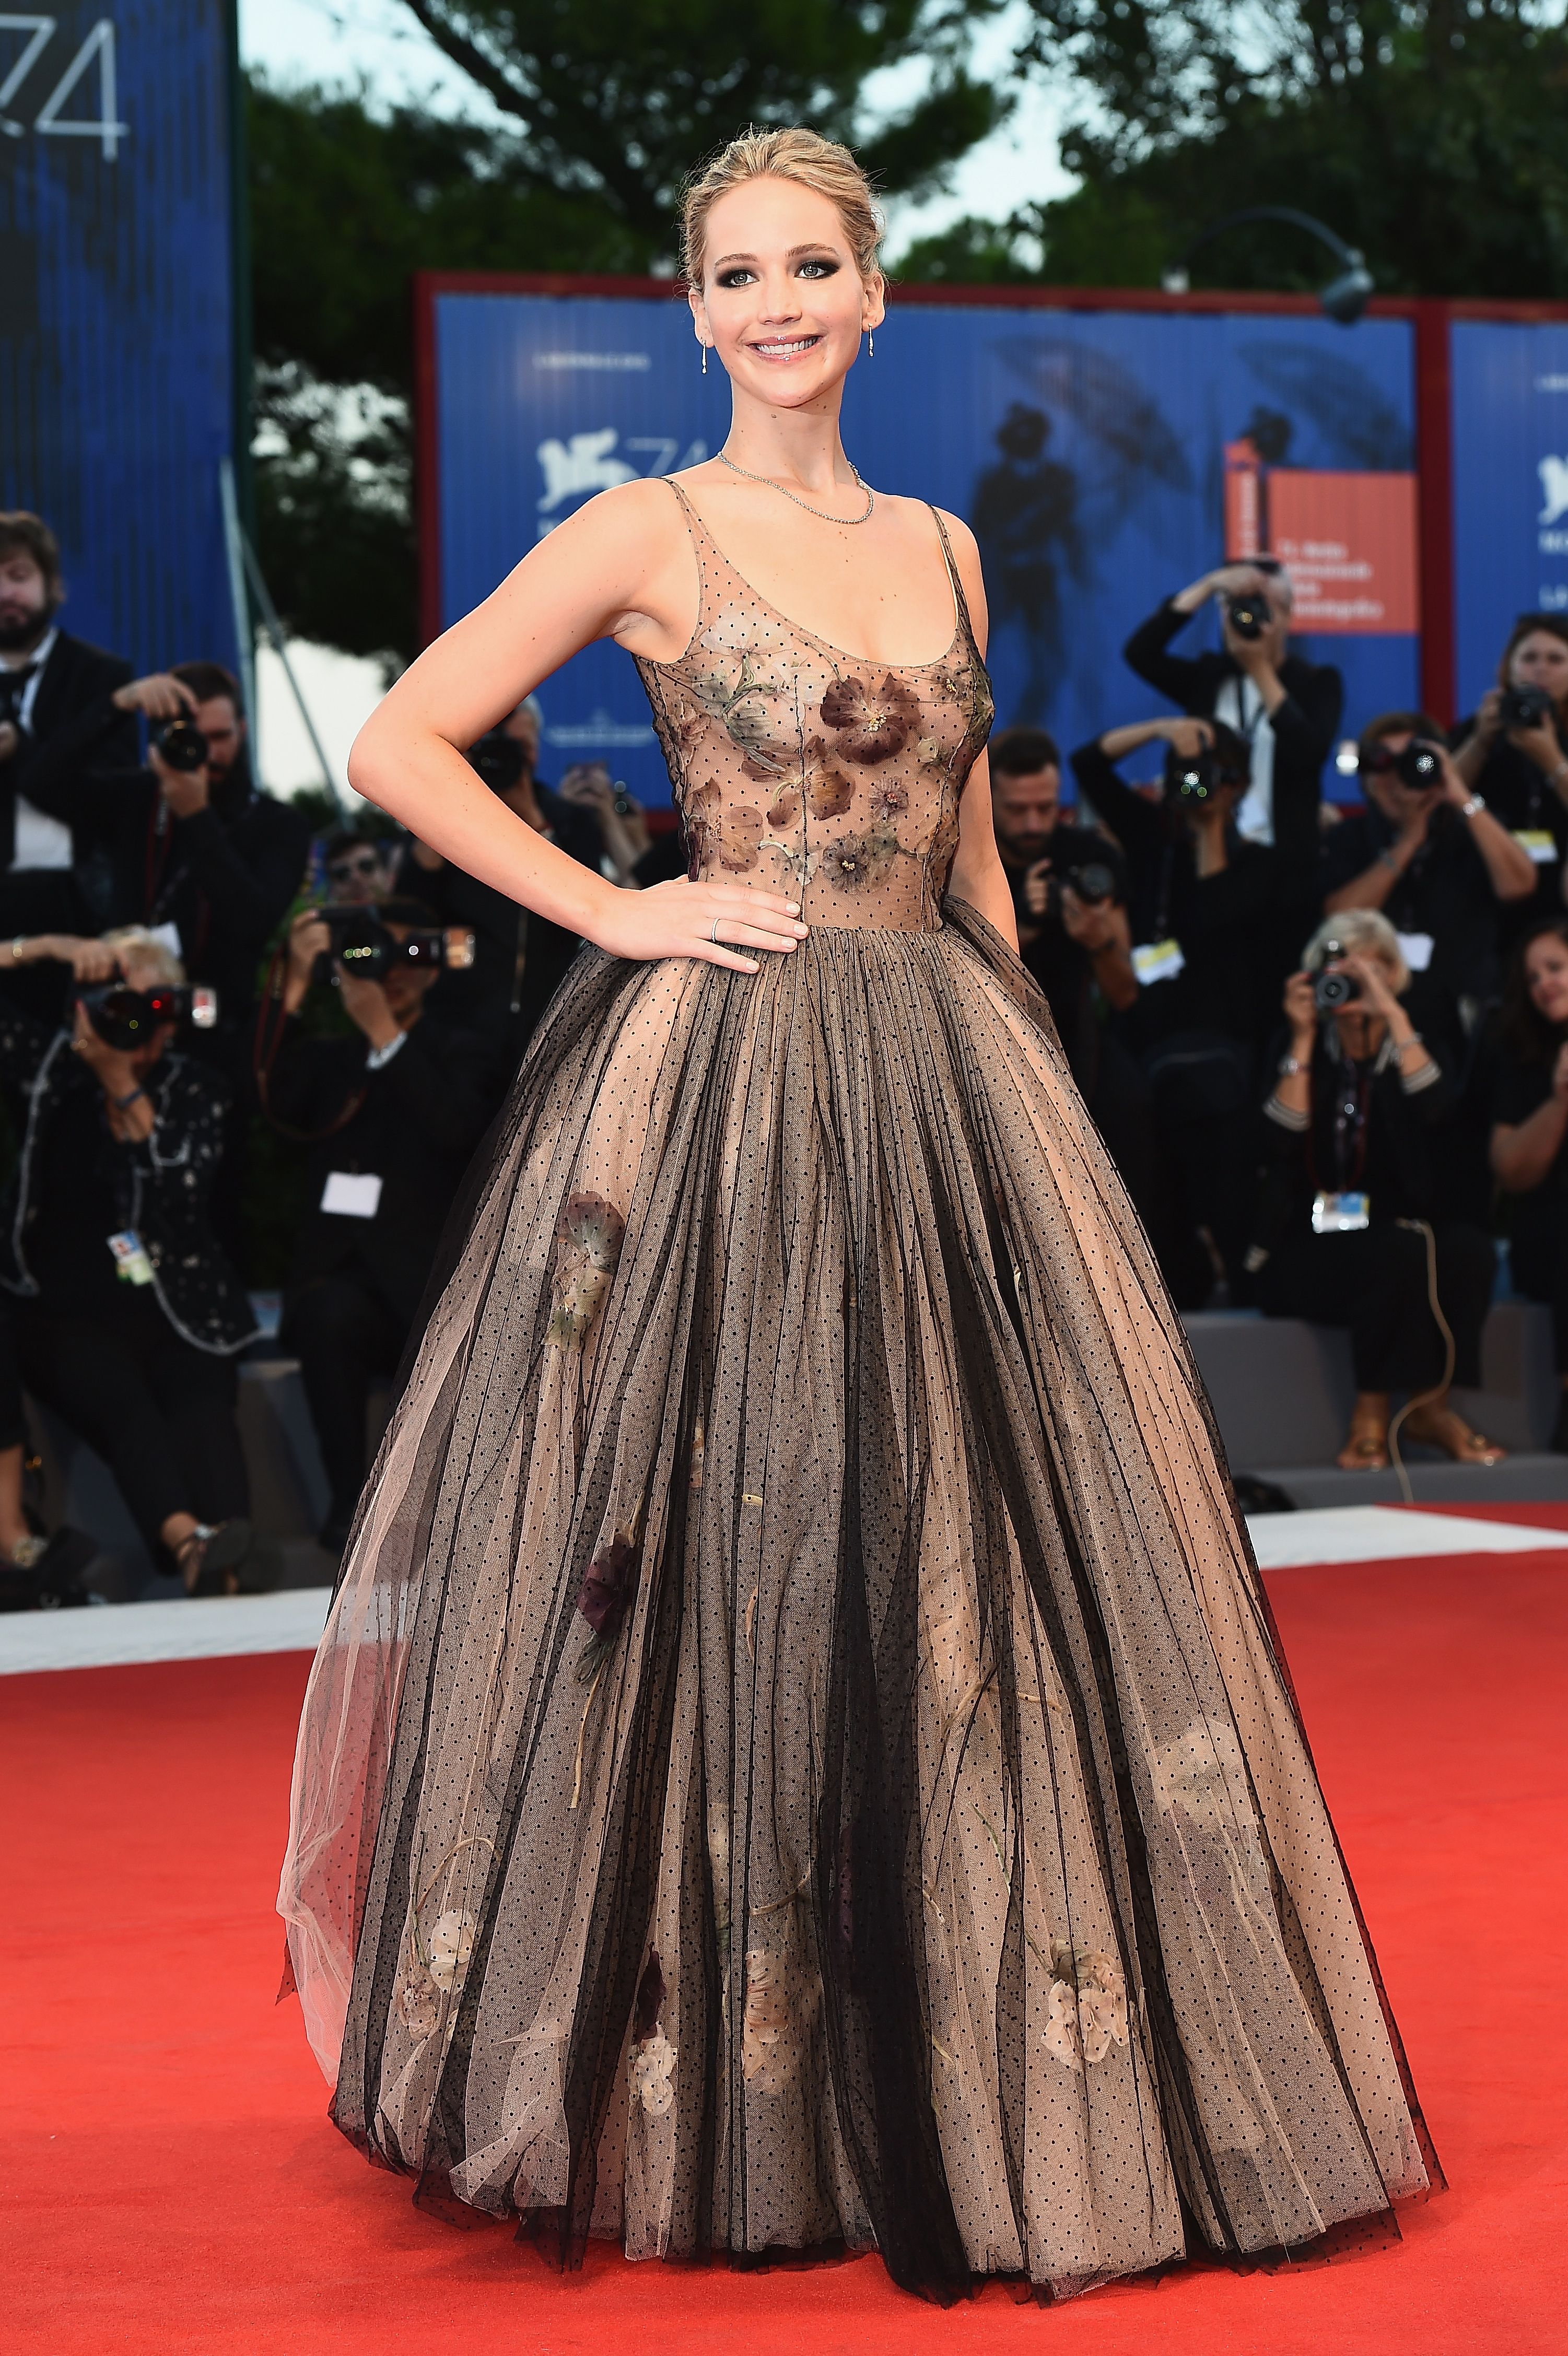 Jennifer Lawrence Wears a Sheer Dior Ball Gown to the Venice Film ...